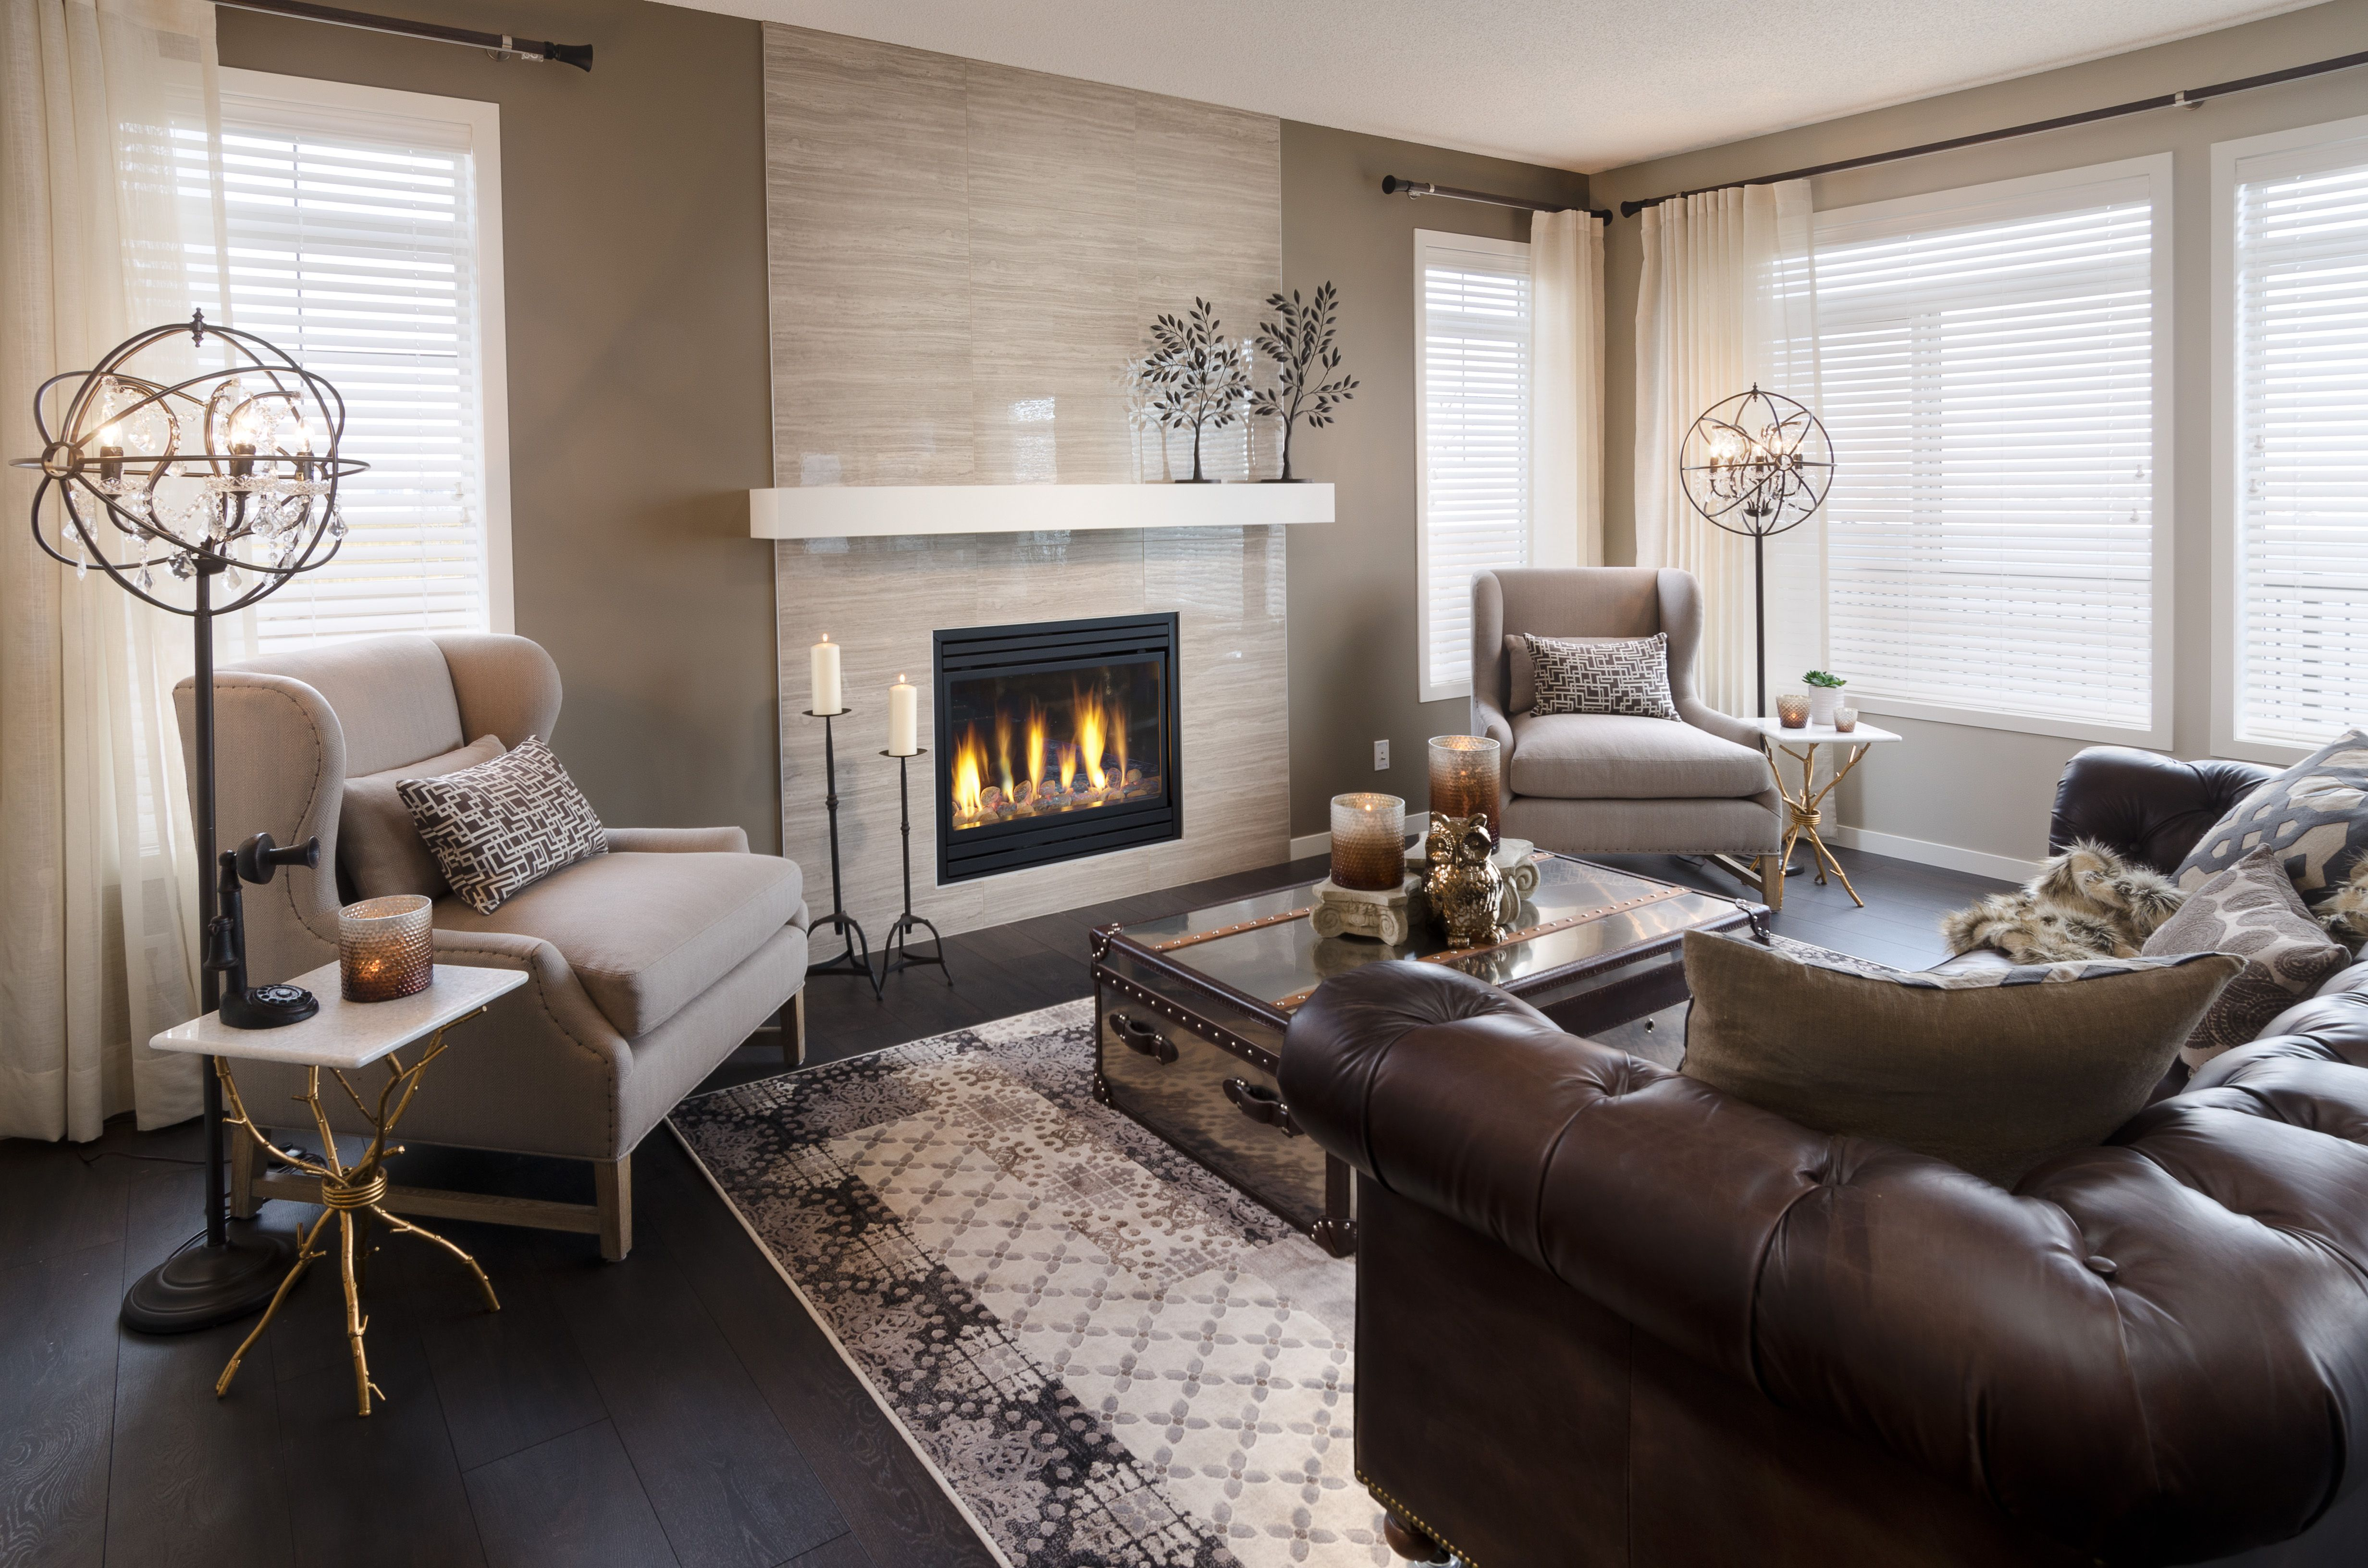 Home interior furniture sierra showhome in new brighton calgary  a light stone fireplace